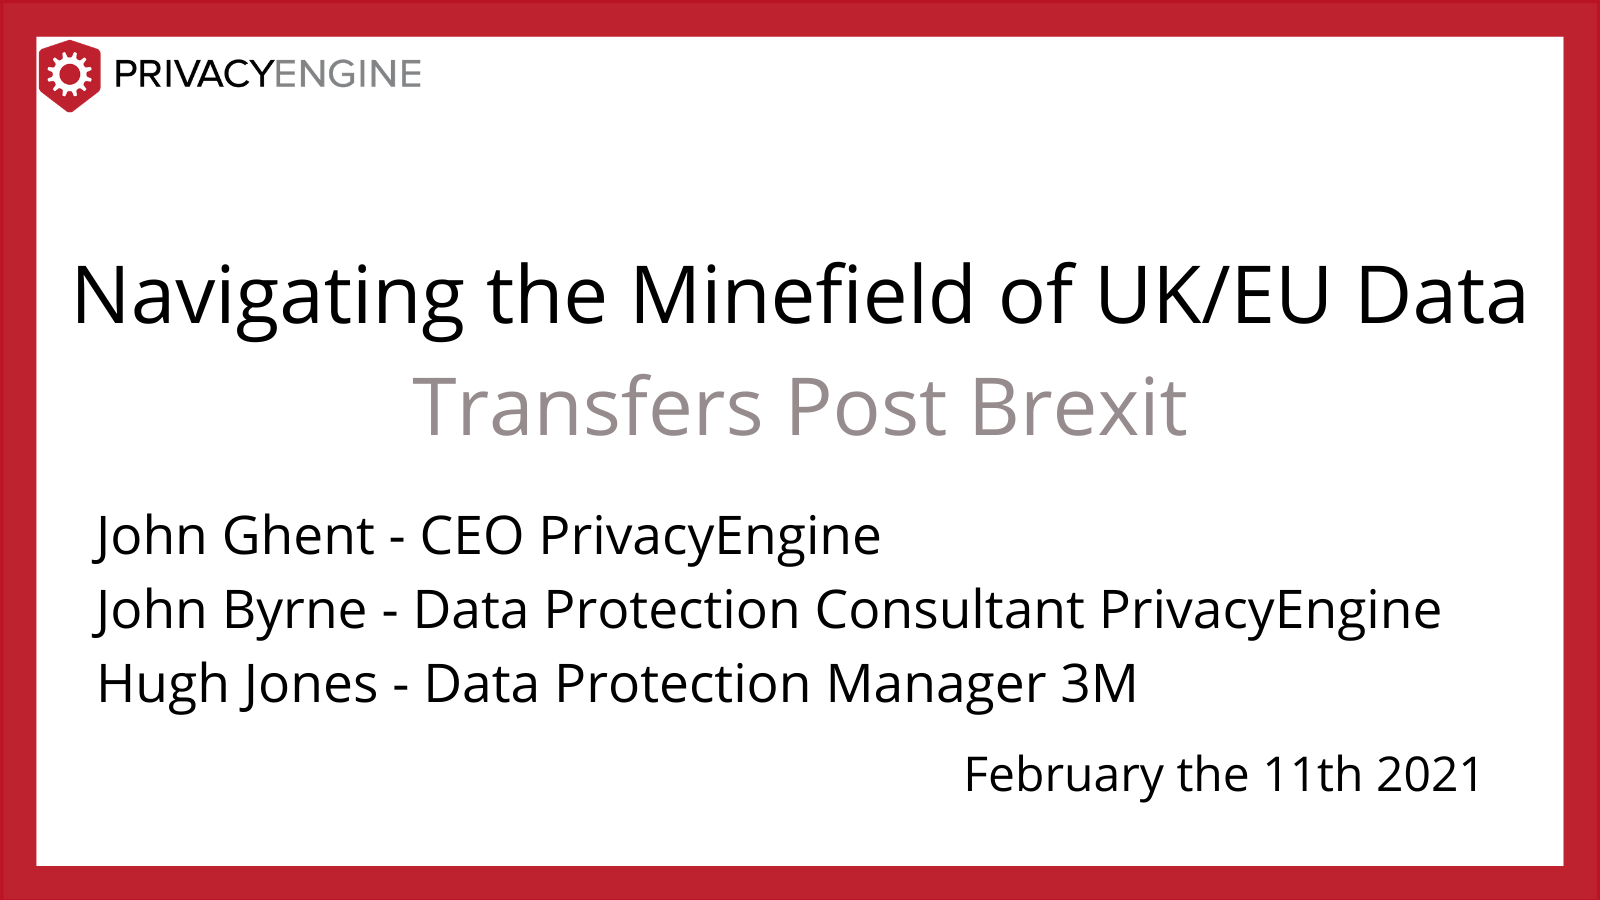 Navigating the Minefield of UK_EU Data Transfers Post Brexit (2)